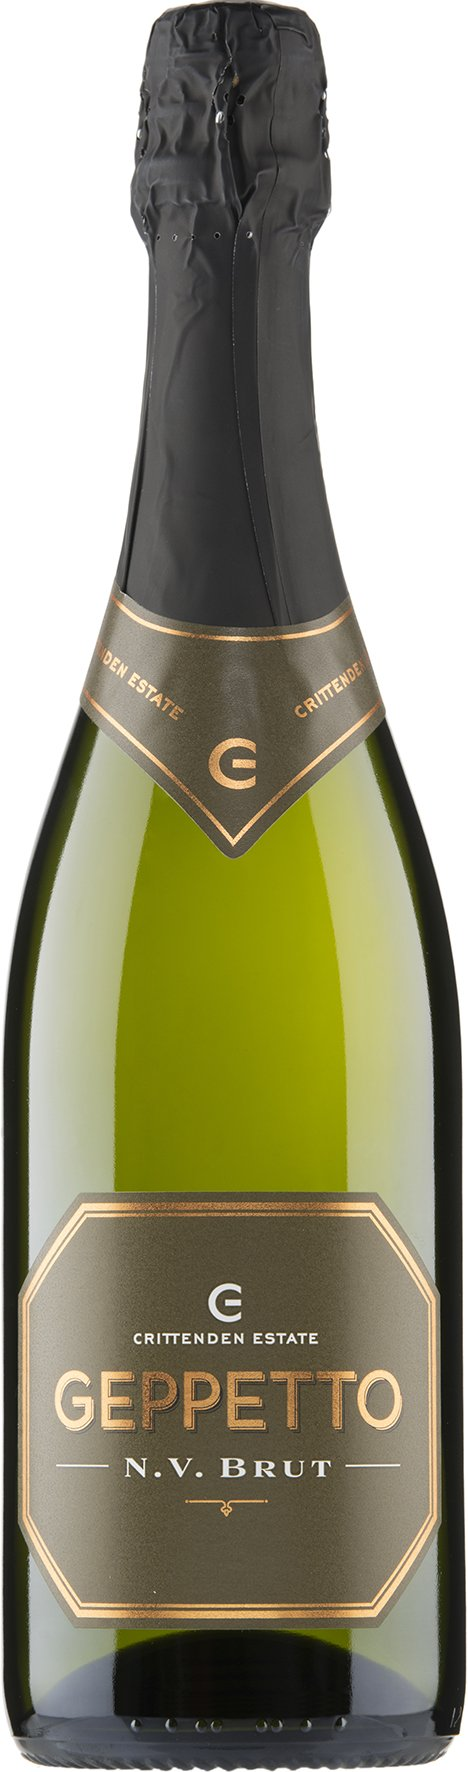 Crittenden Wines-Crittenden Wines Geppetto Brut NV-Pubble Alcohol Delivery